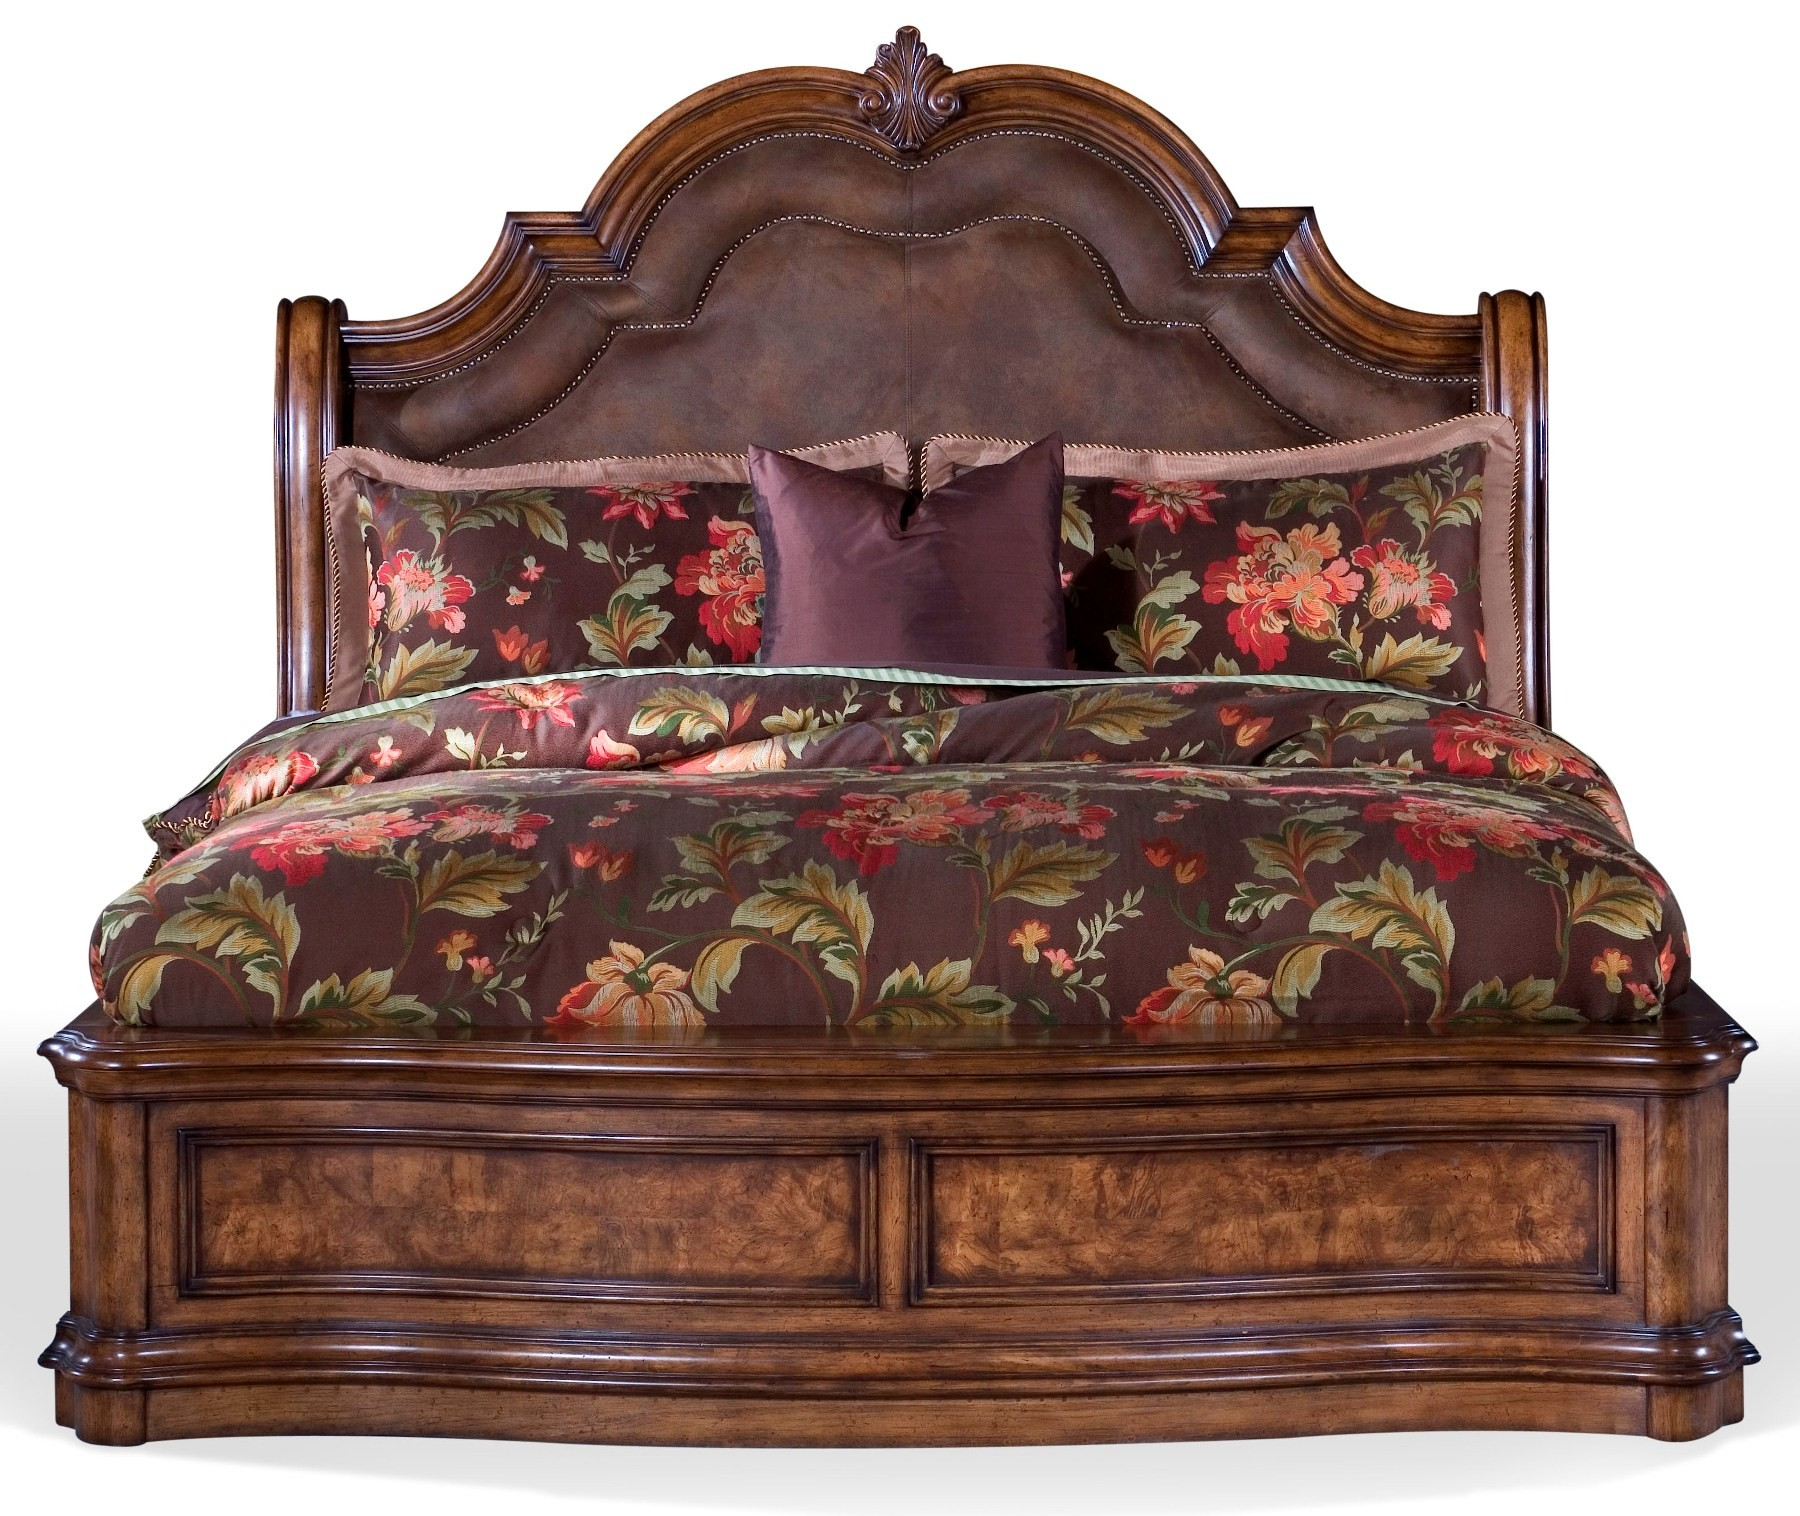 Furniture Furniture: San Mateo King Sleigh Bed From Pulaski (662180-662181